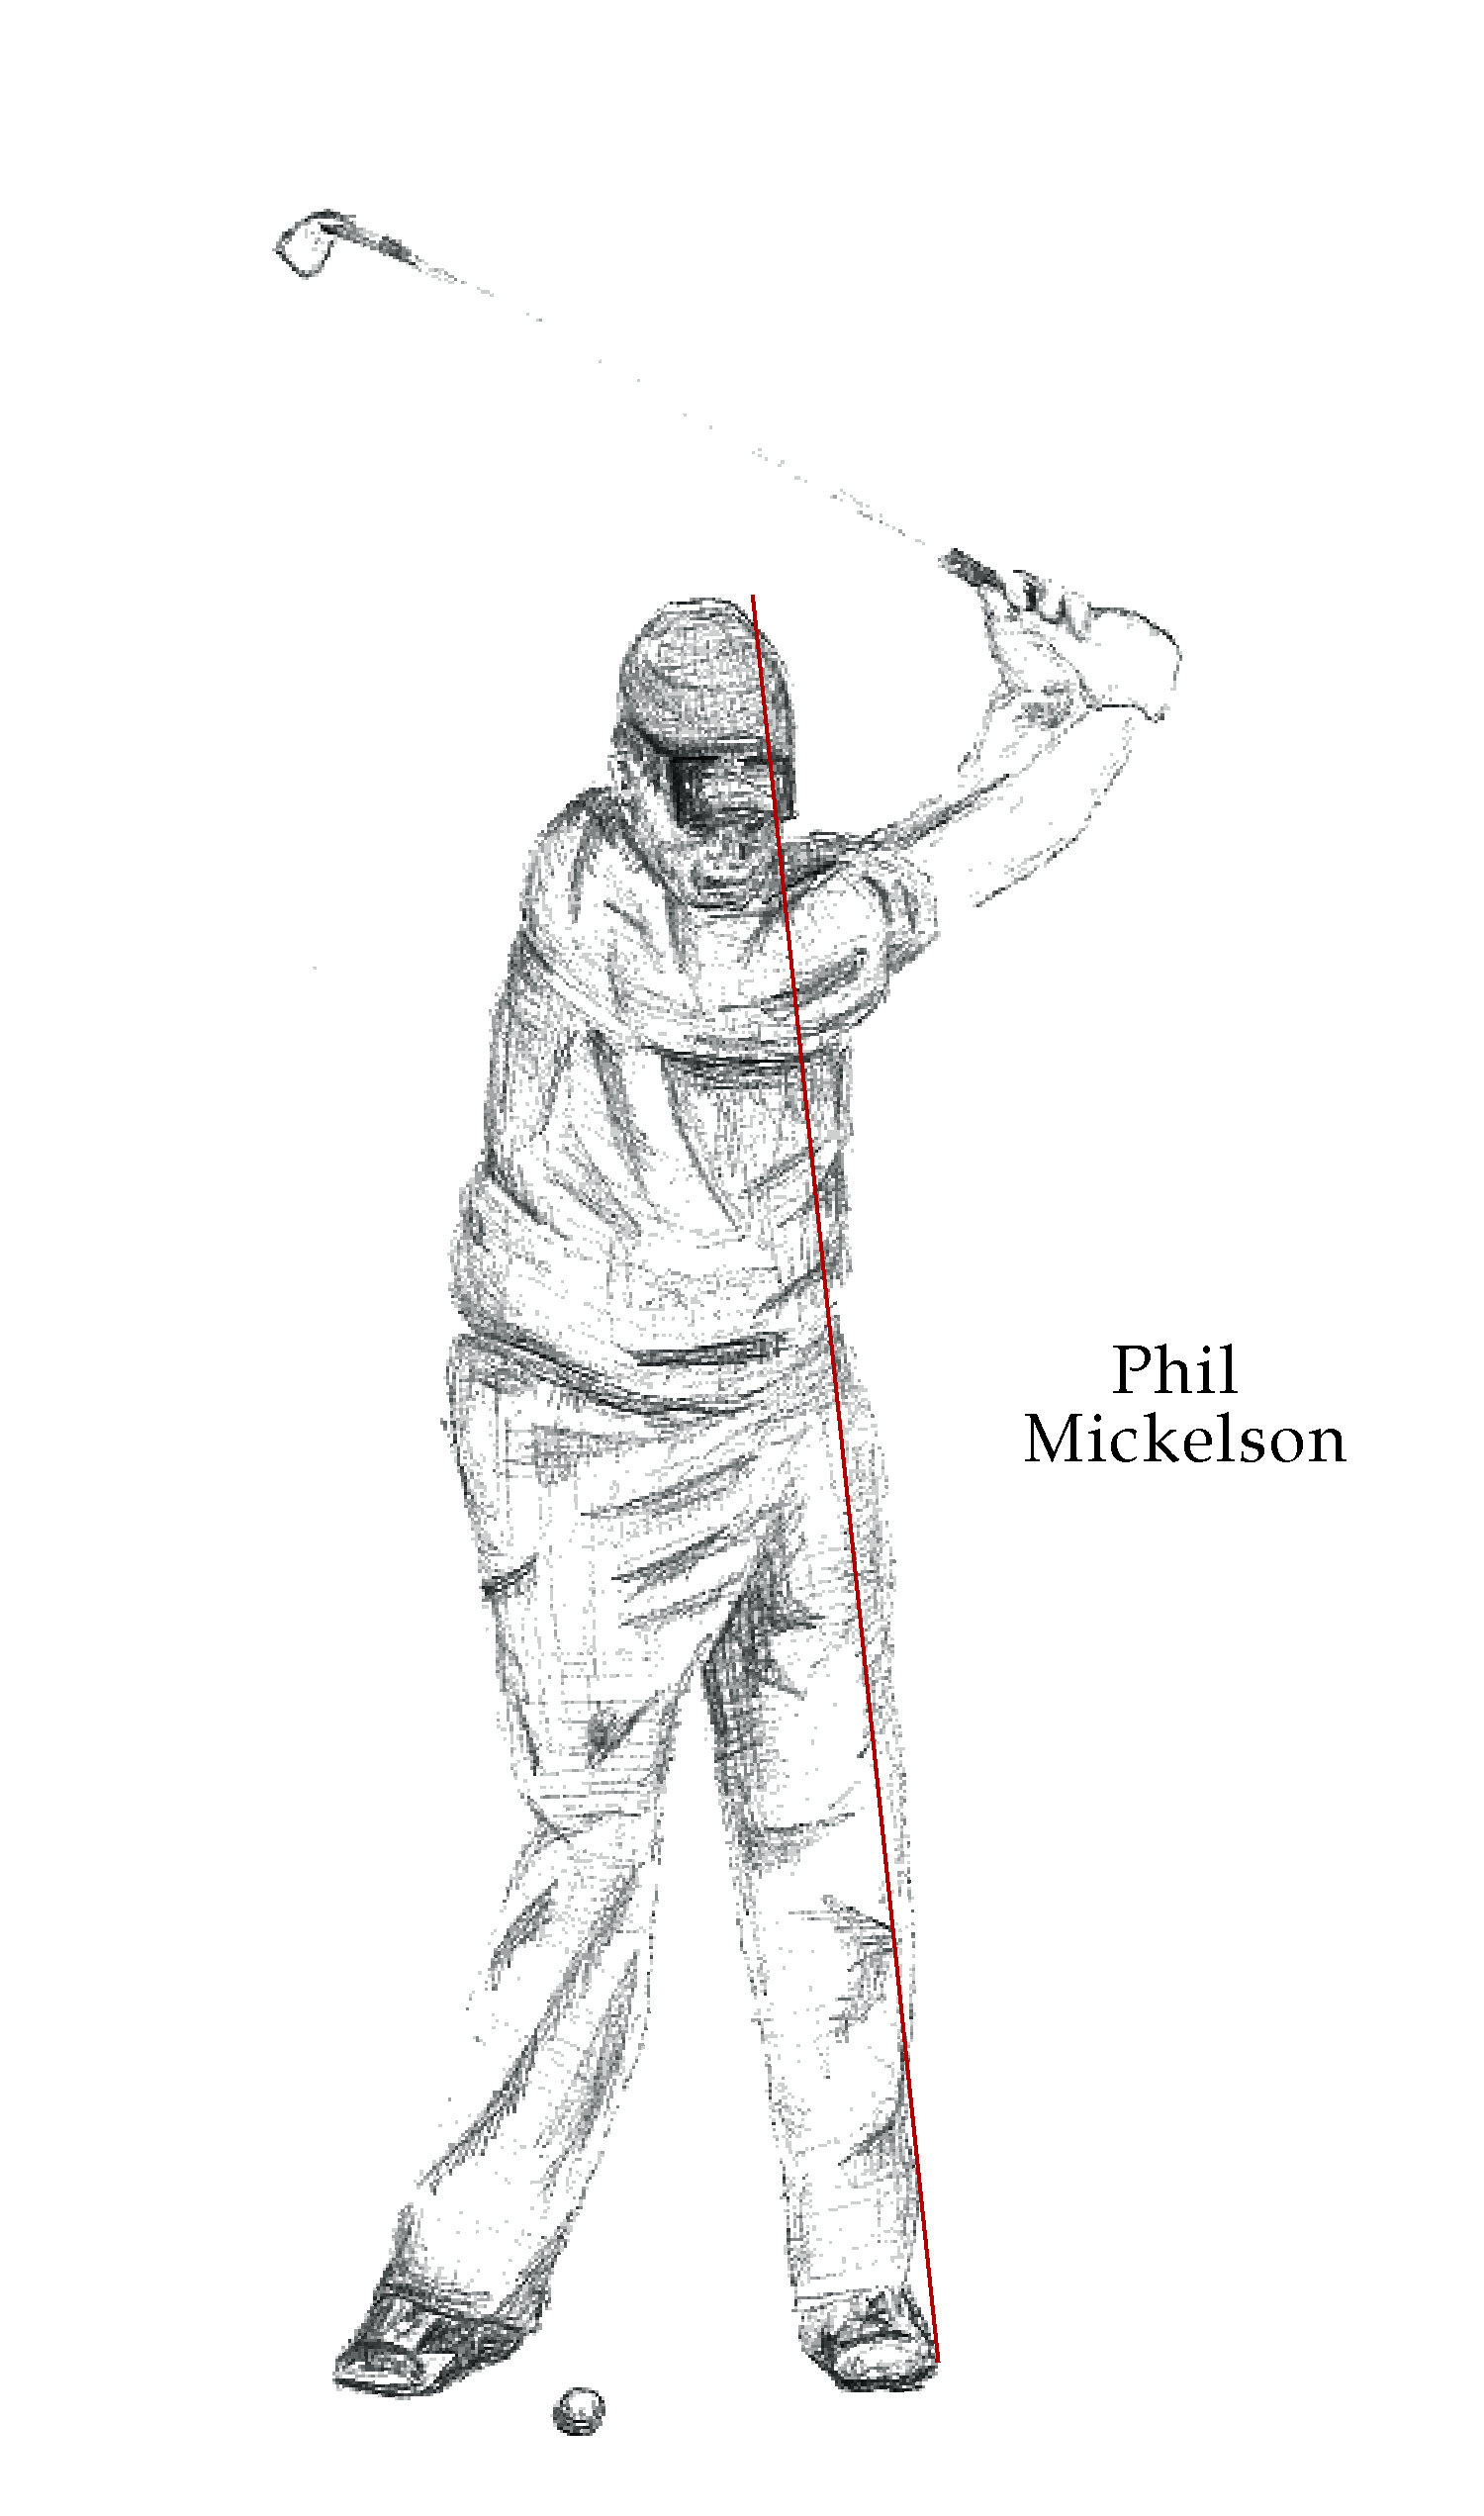 Phil Mickelson and the 84 Degree Secret